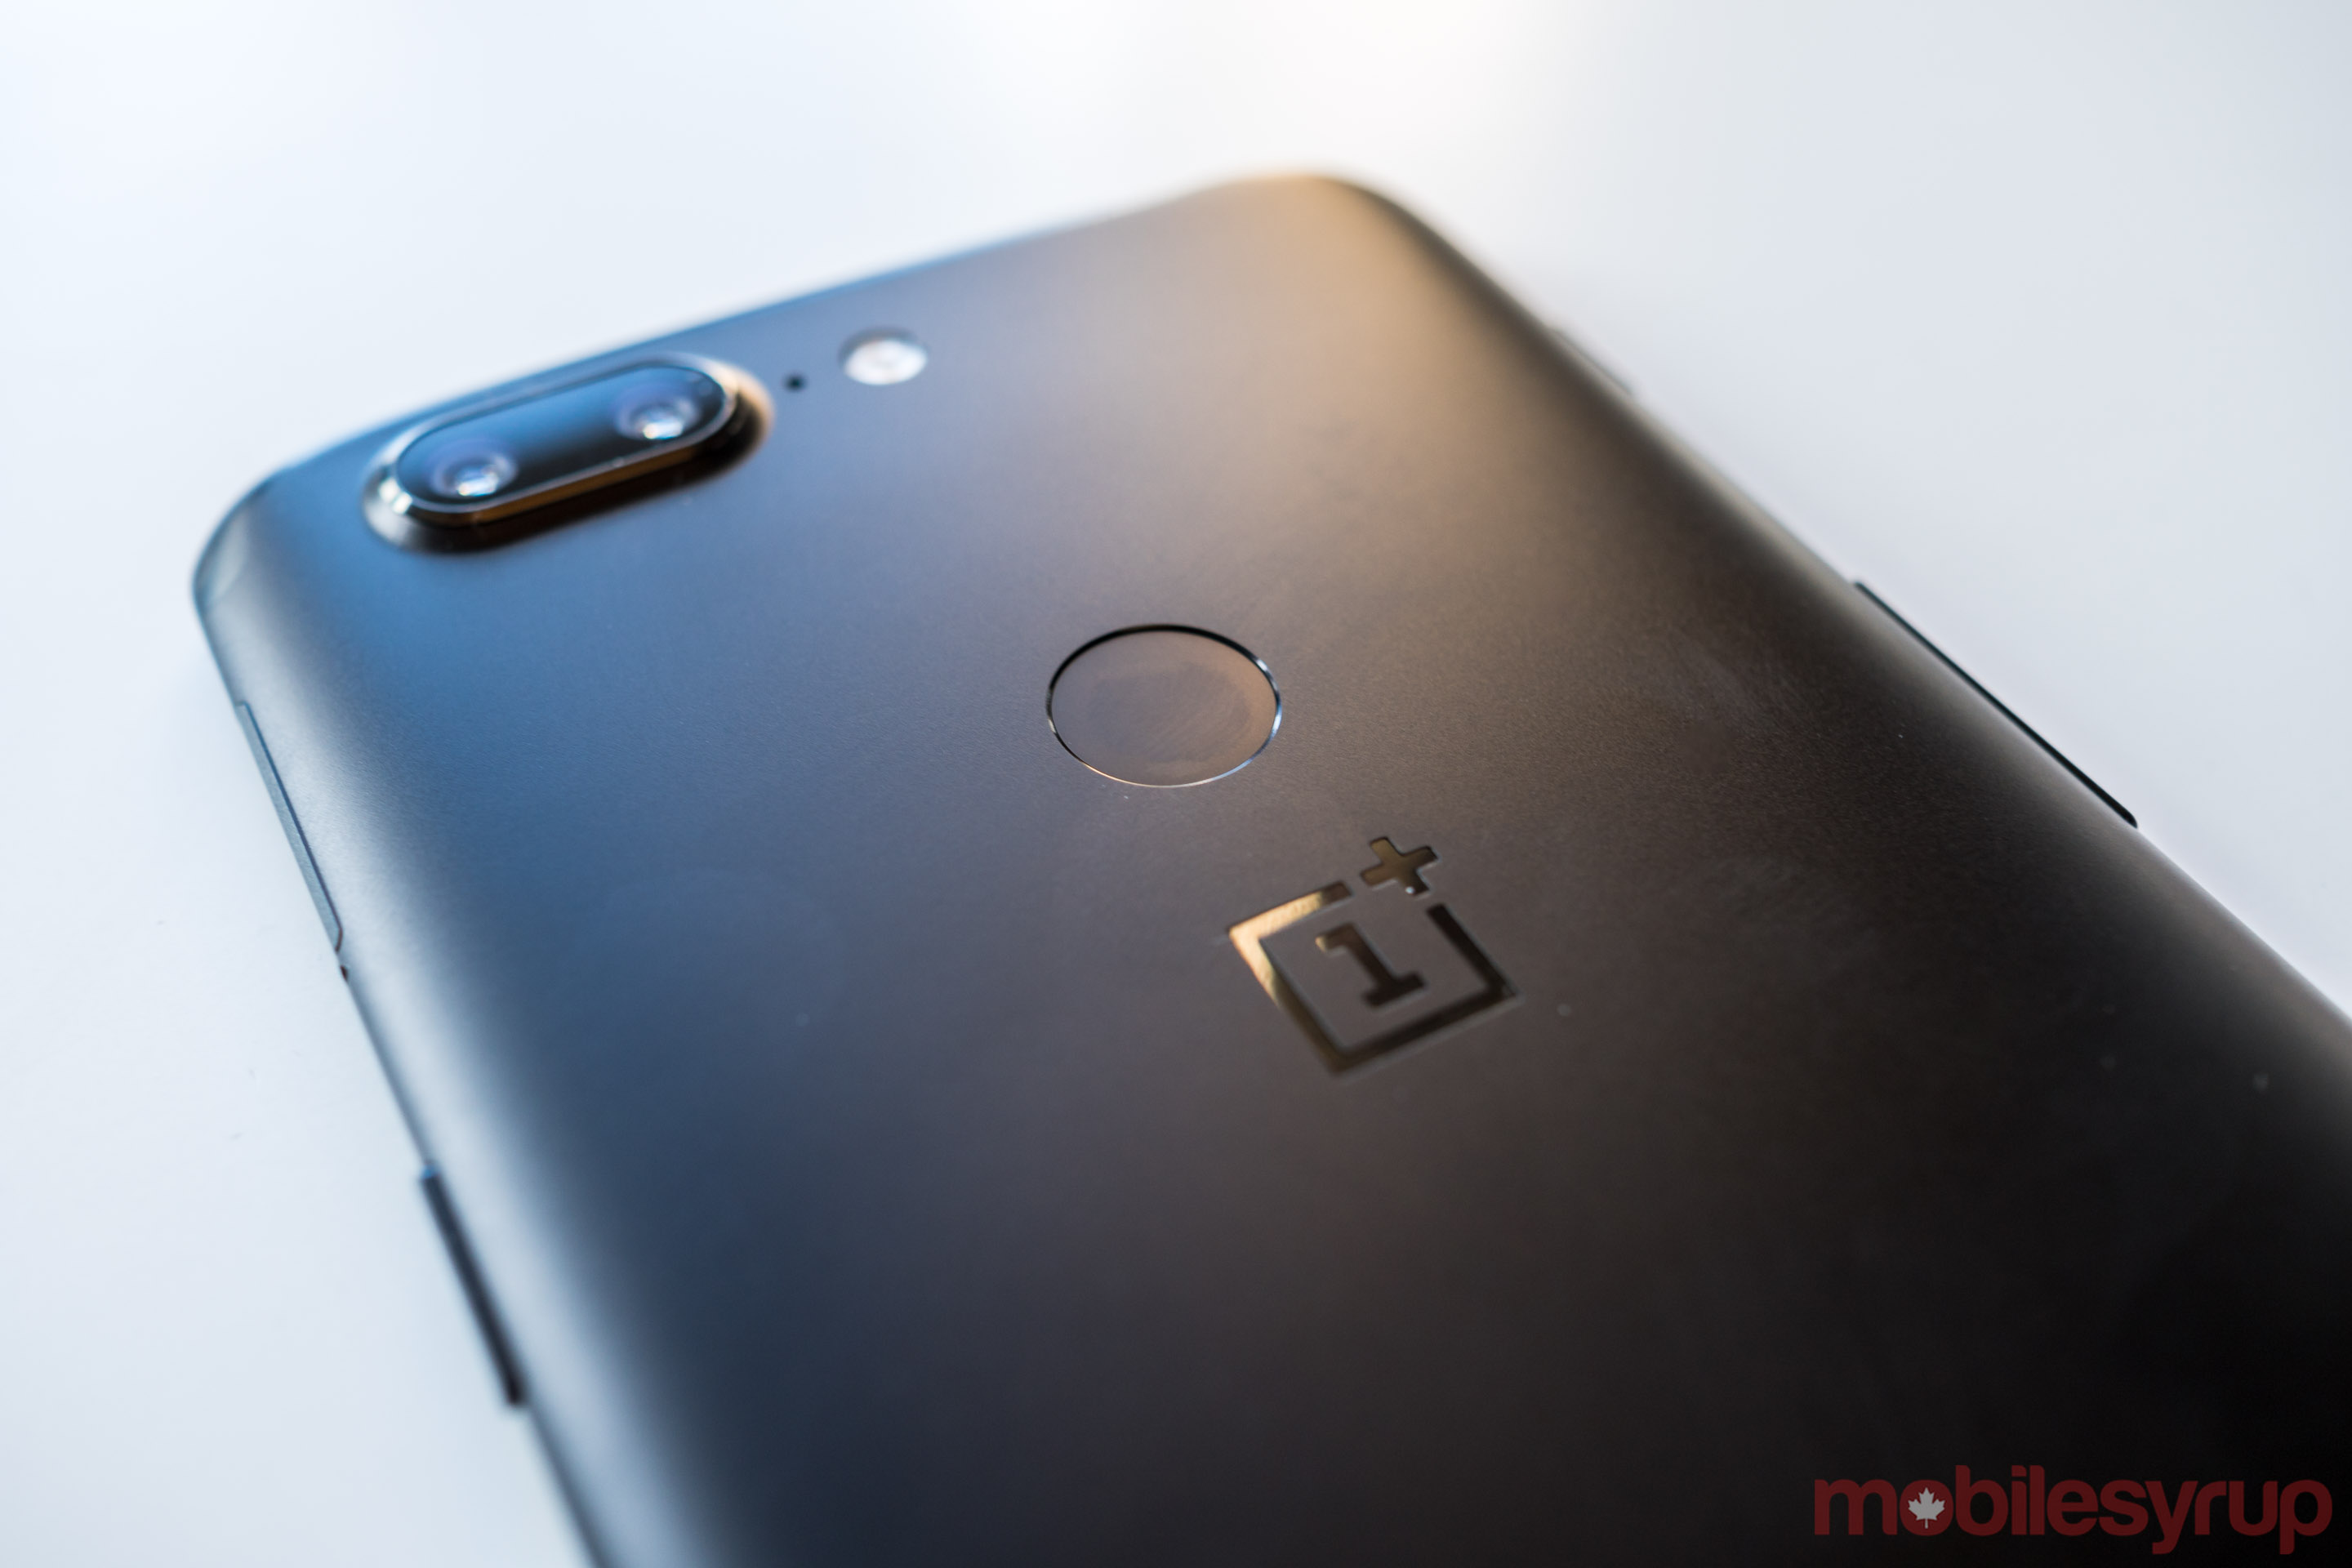 A shot of the OnePlus 5T's rear-facing finger